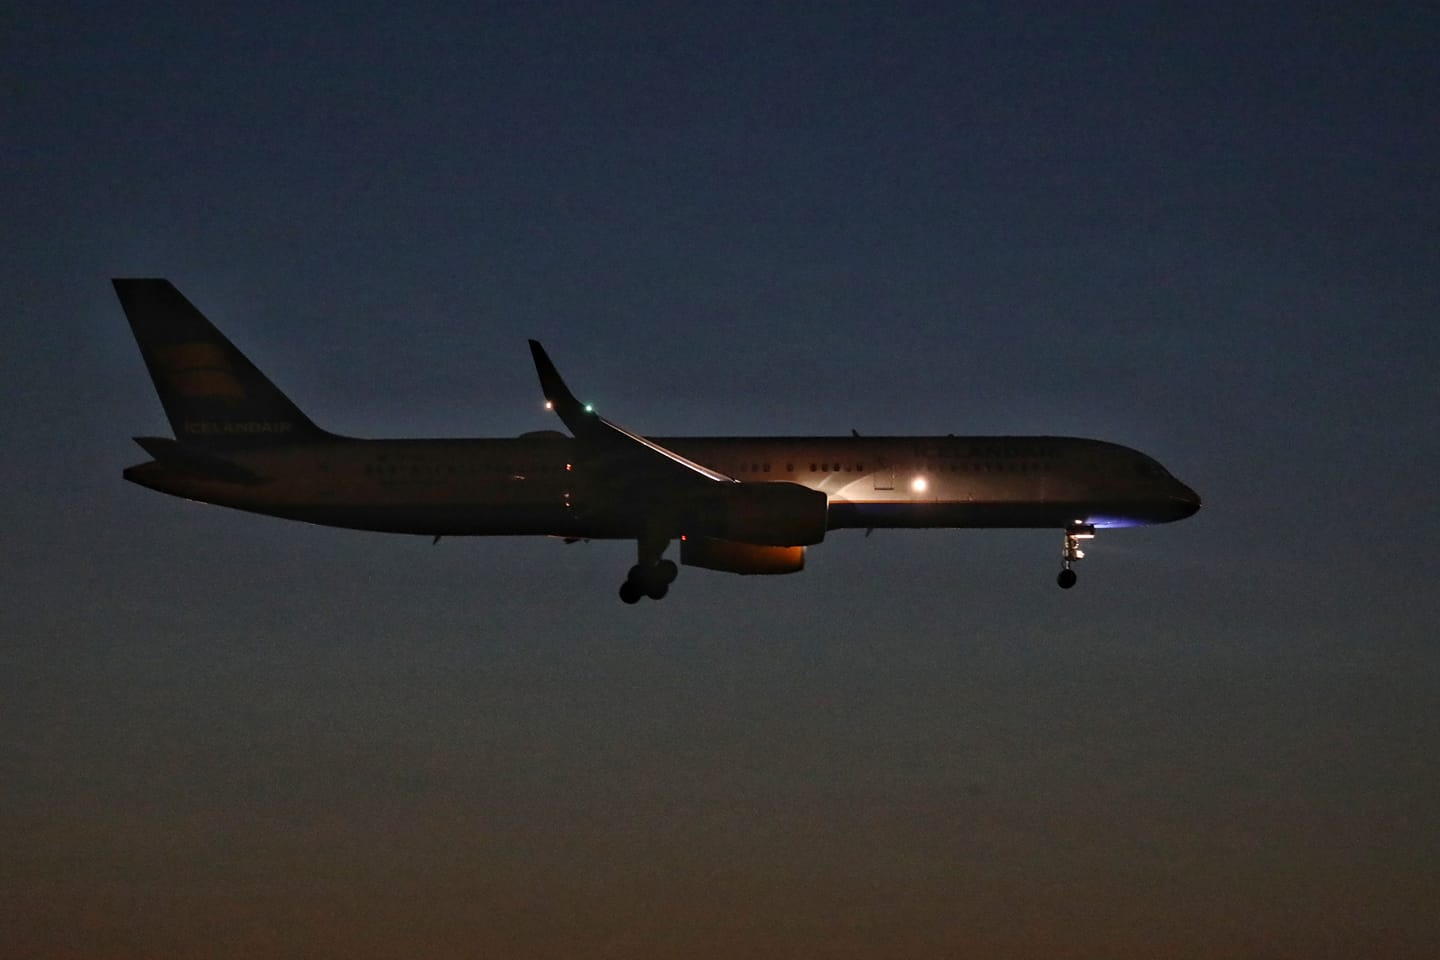 Night landing of Icelandair Boeing 752 TF-ISD in Sheremetyevo, Moscow during World Cup 2018 on 15.06.18 // Source: Alexander Bukin